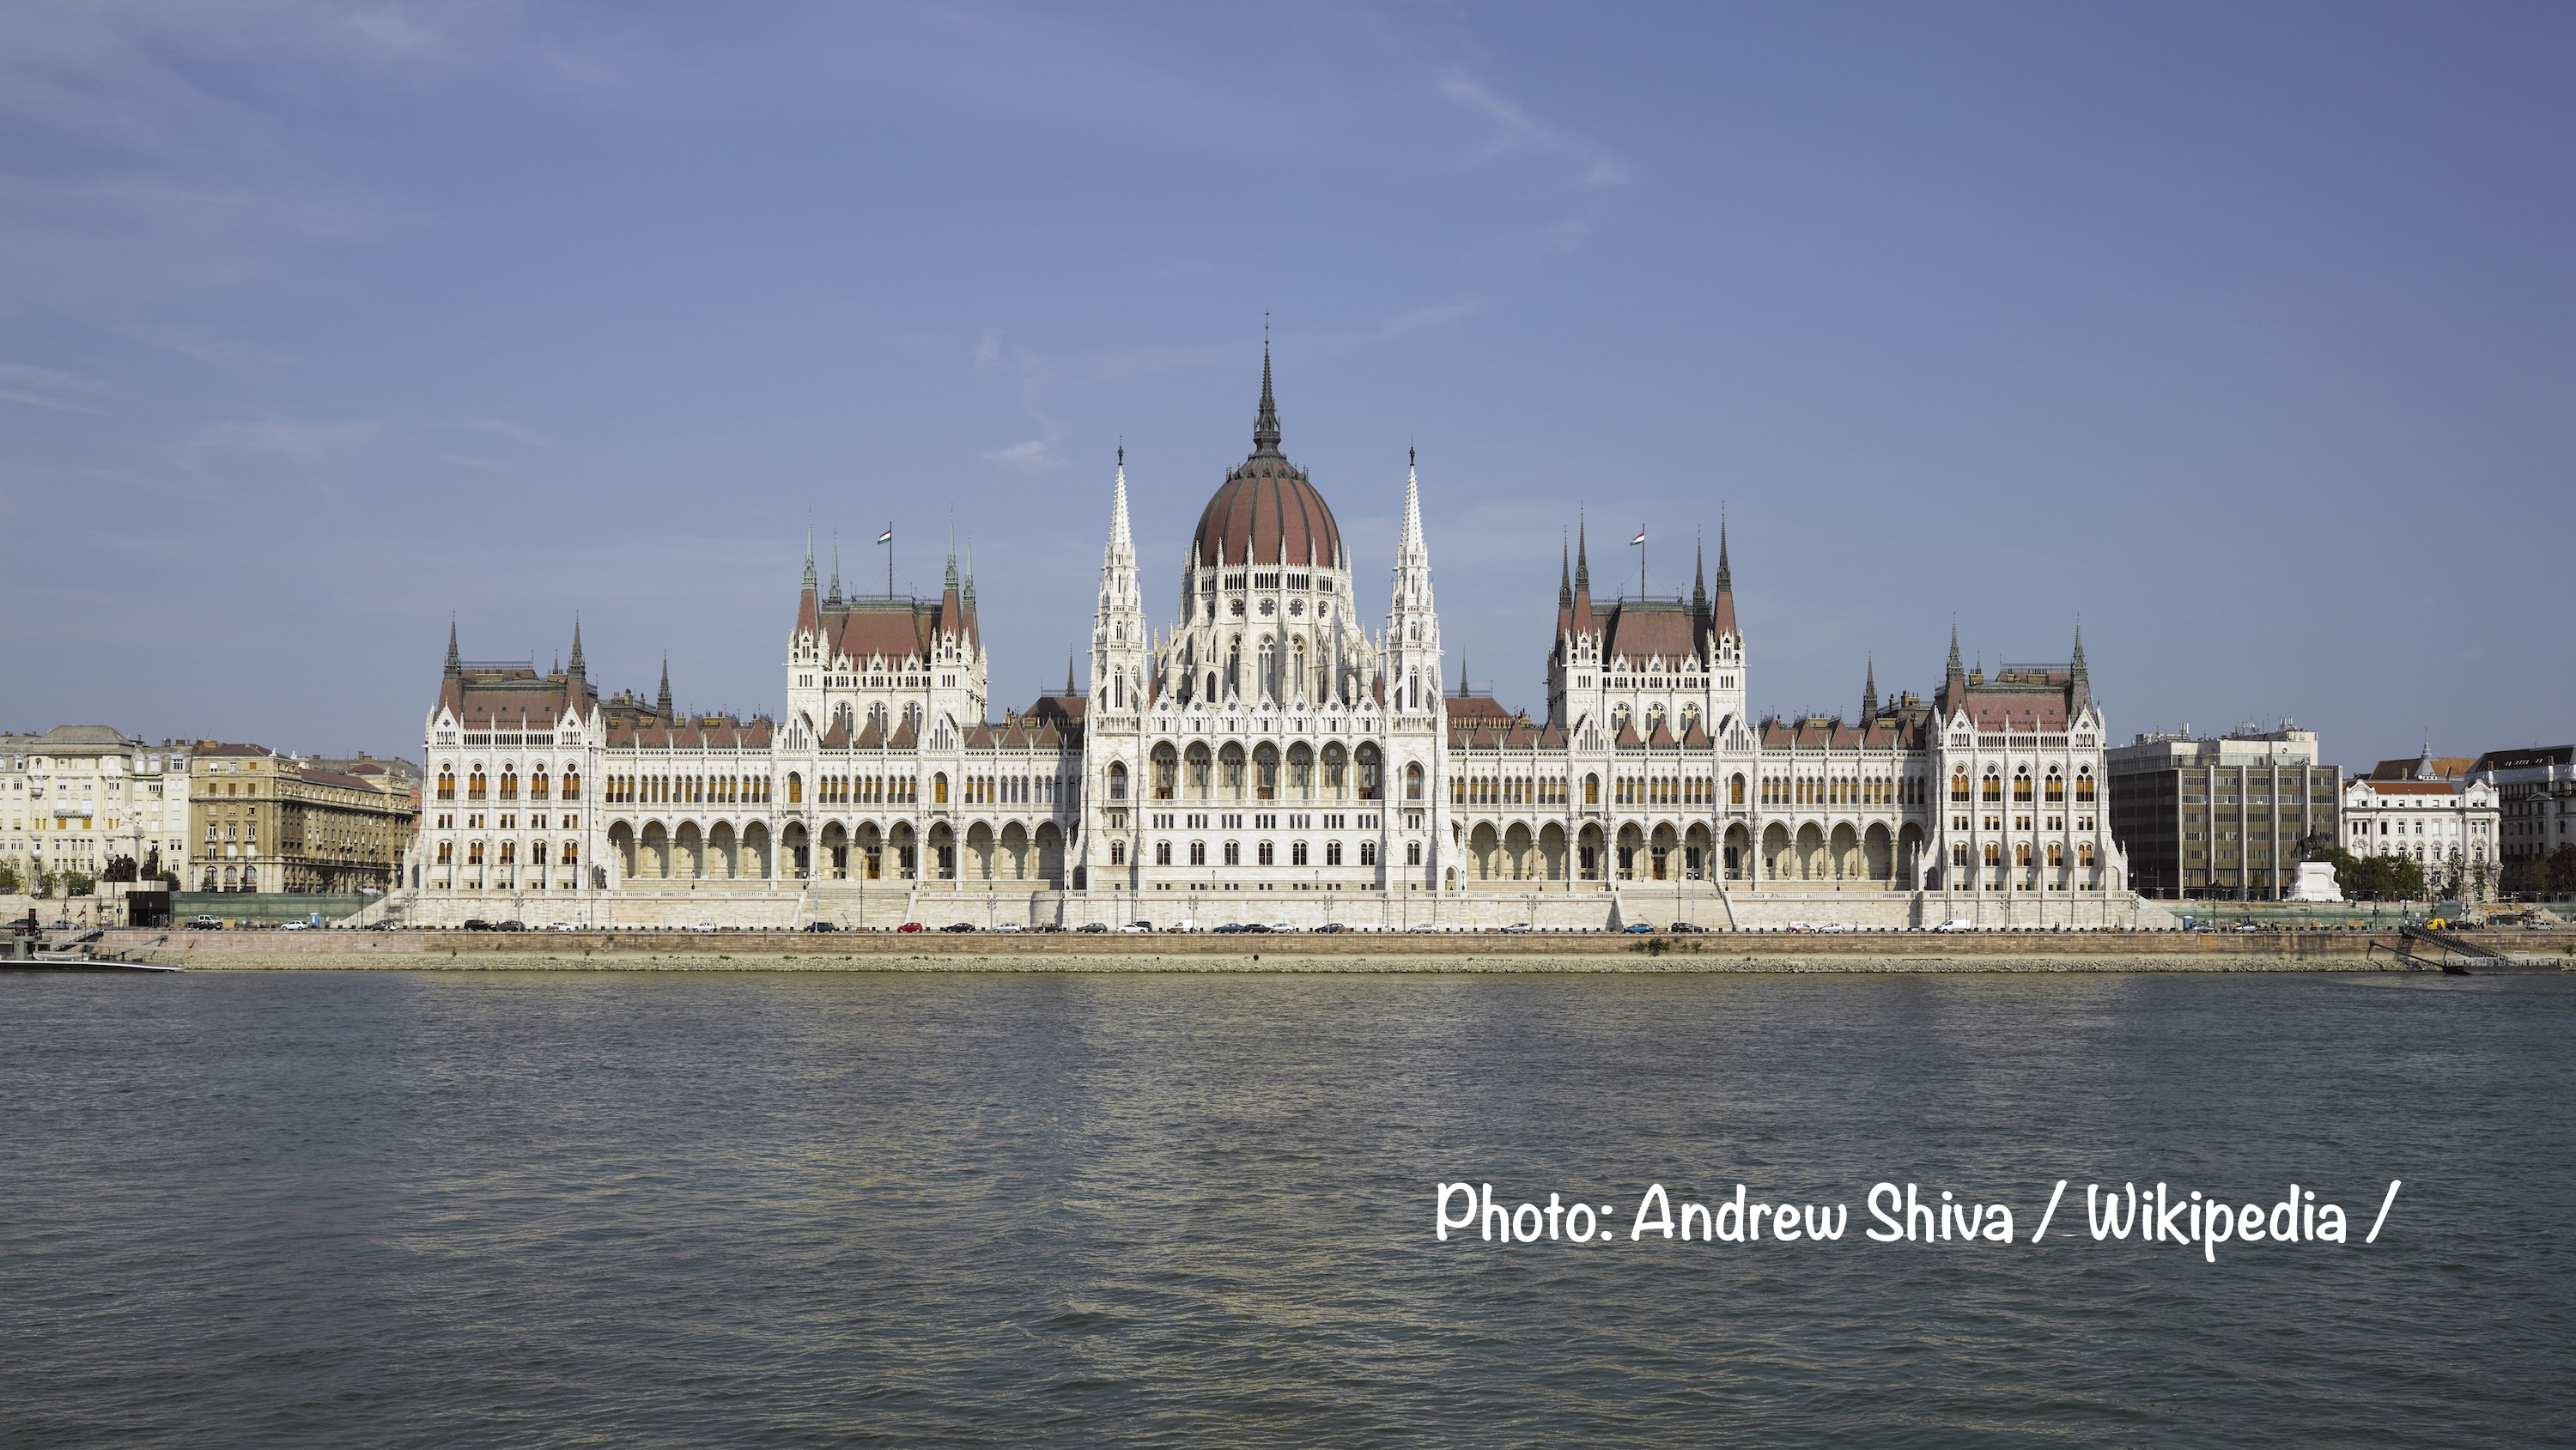 National Holiday of Hungary, the building of the Hungarian Parliament.